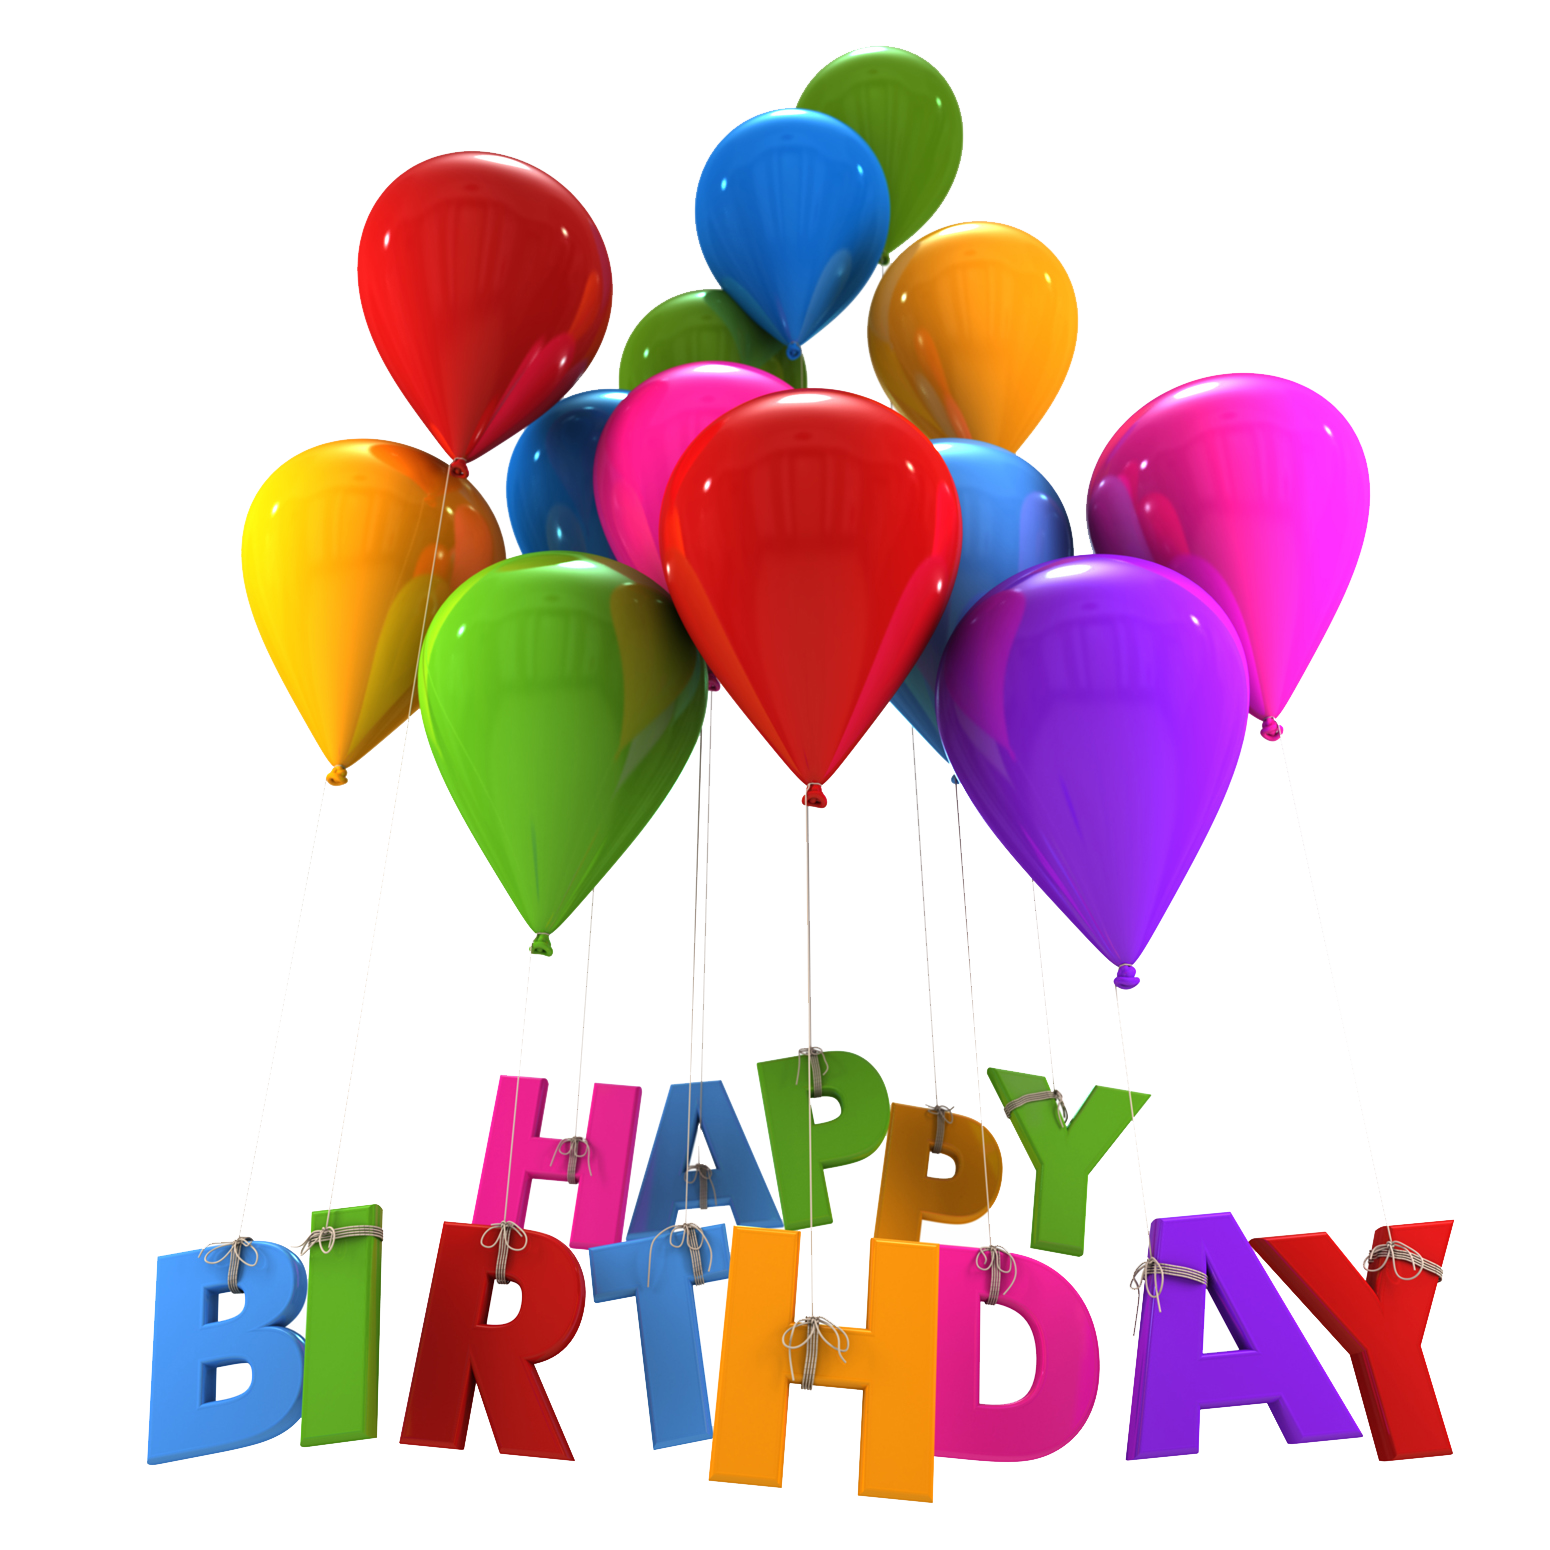 Now you can download Happy Birthday Transparent PNG Image